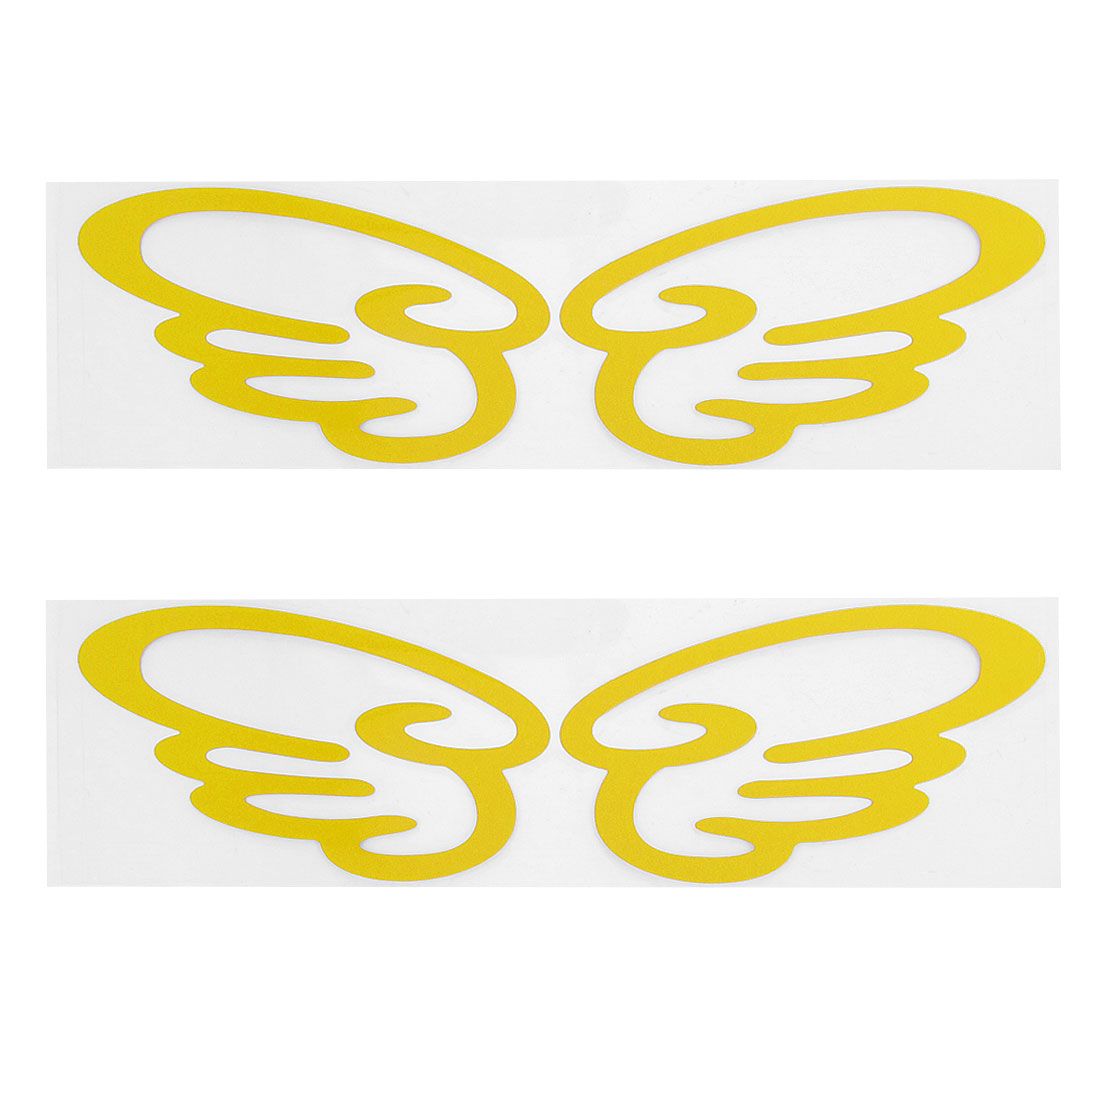 2 Pairs Yellow Plastic Wing Shape Decal Sticker Car Bumper Motorcycle Reflective